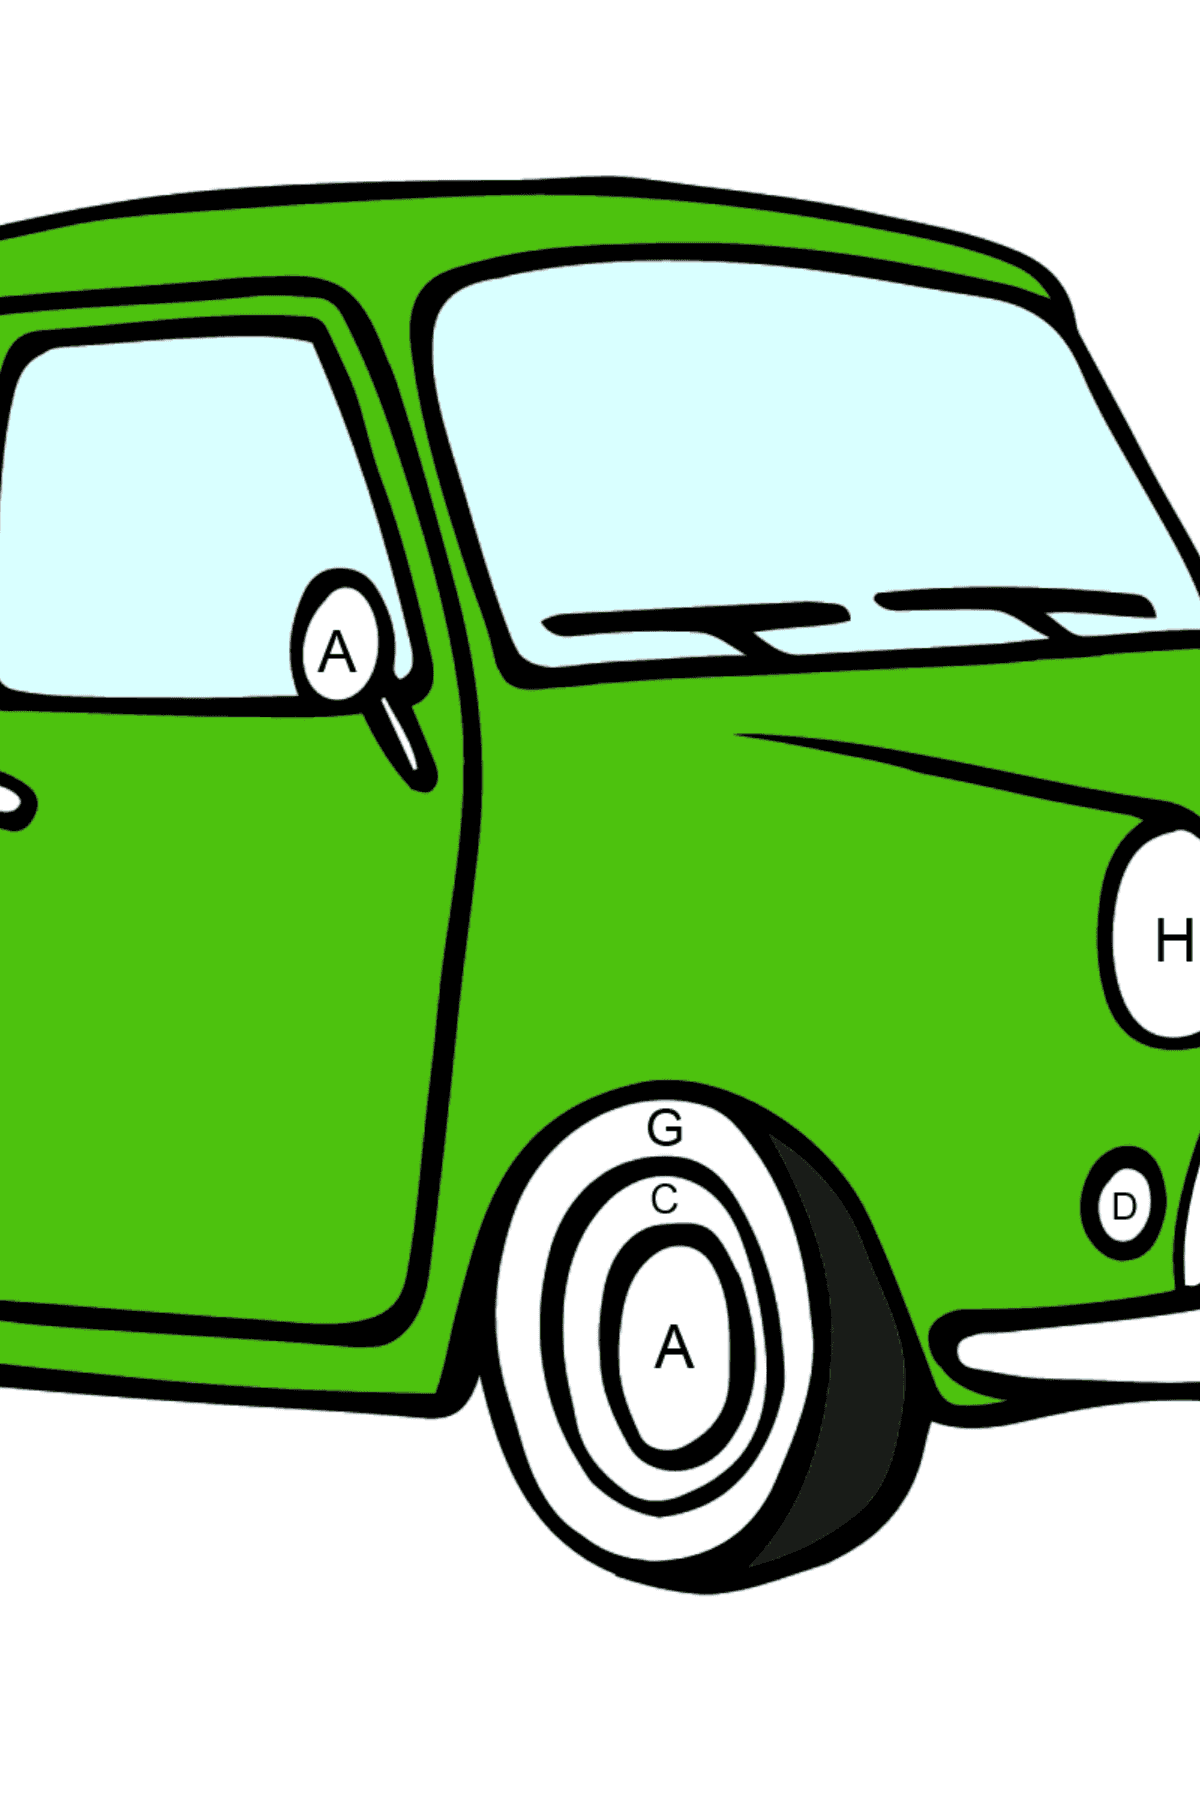 Fiat 500 coloring page (green car) - Coloring by Letters for Kids